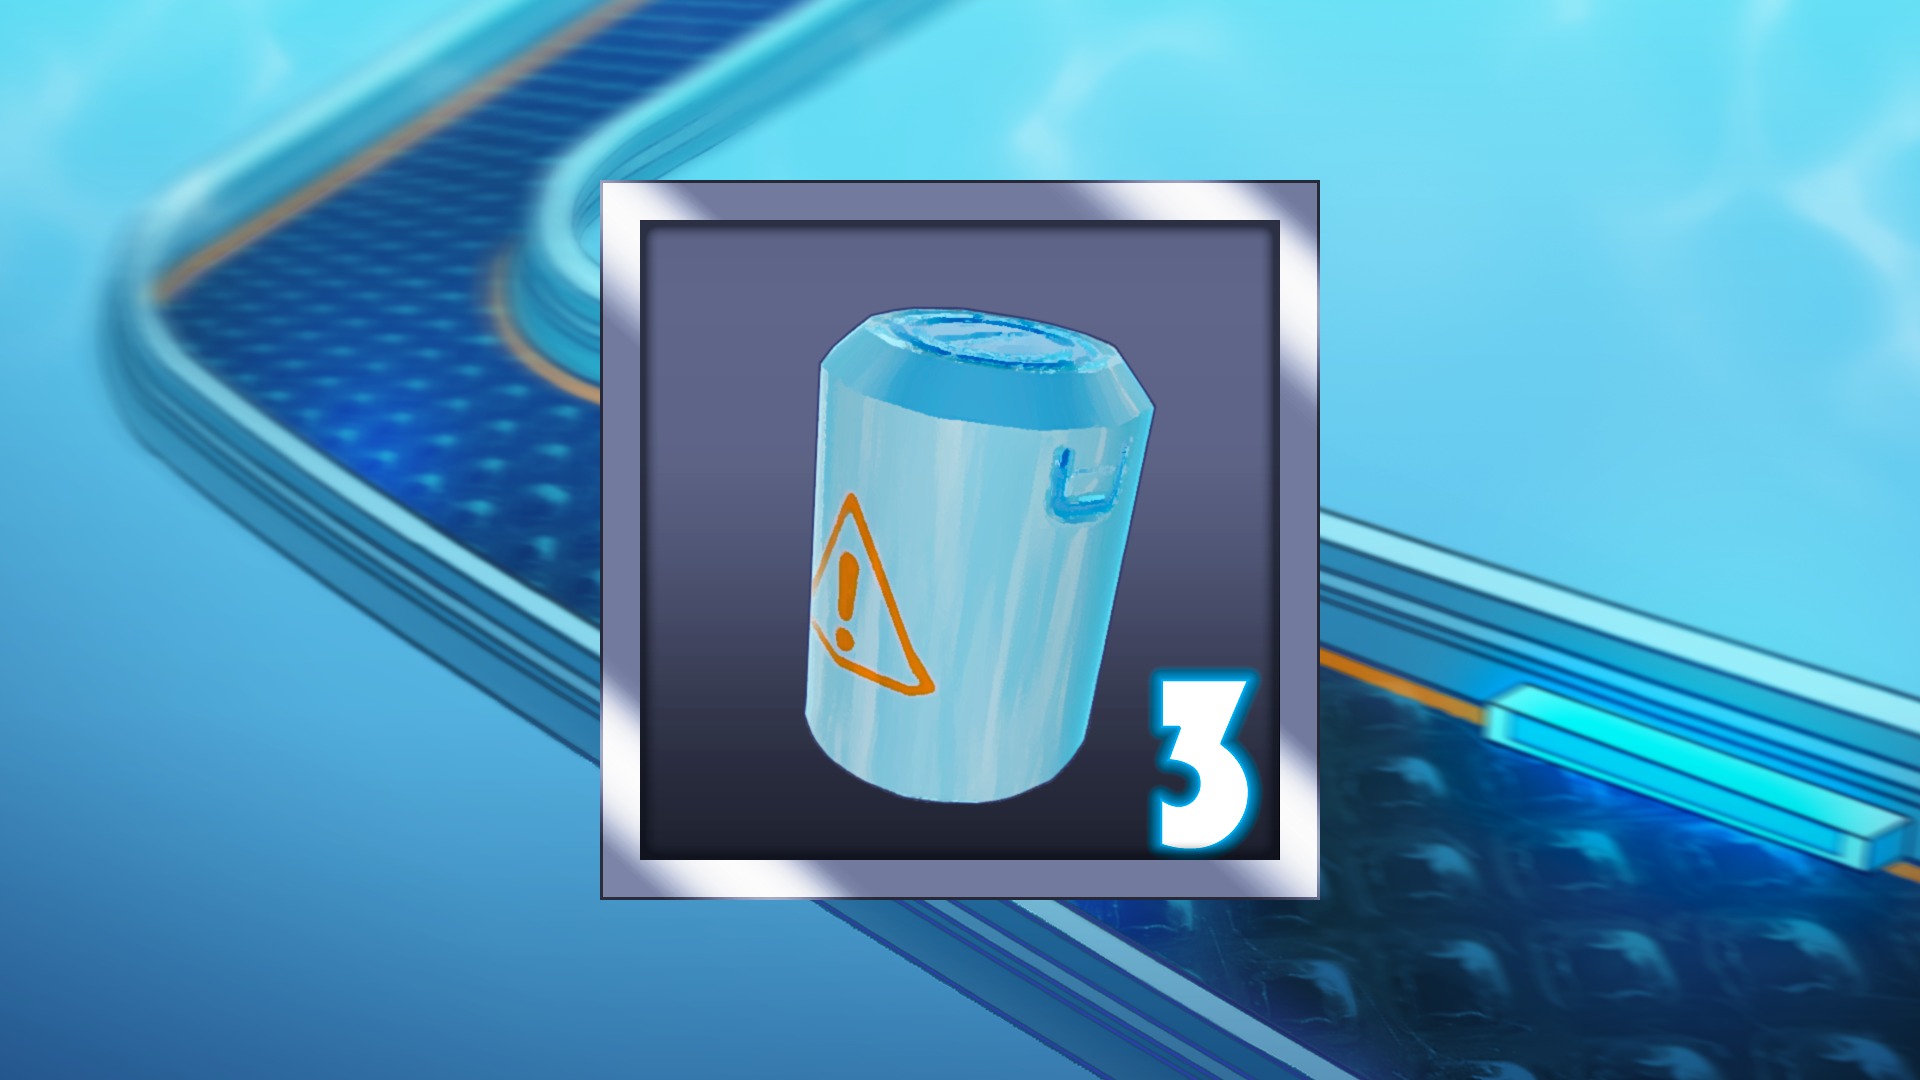 Icon for In the middle